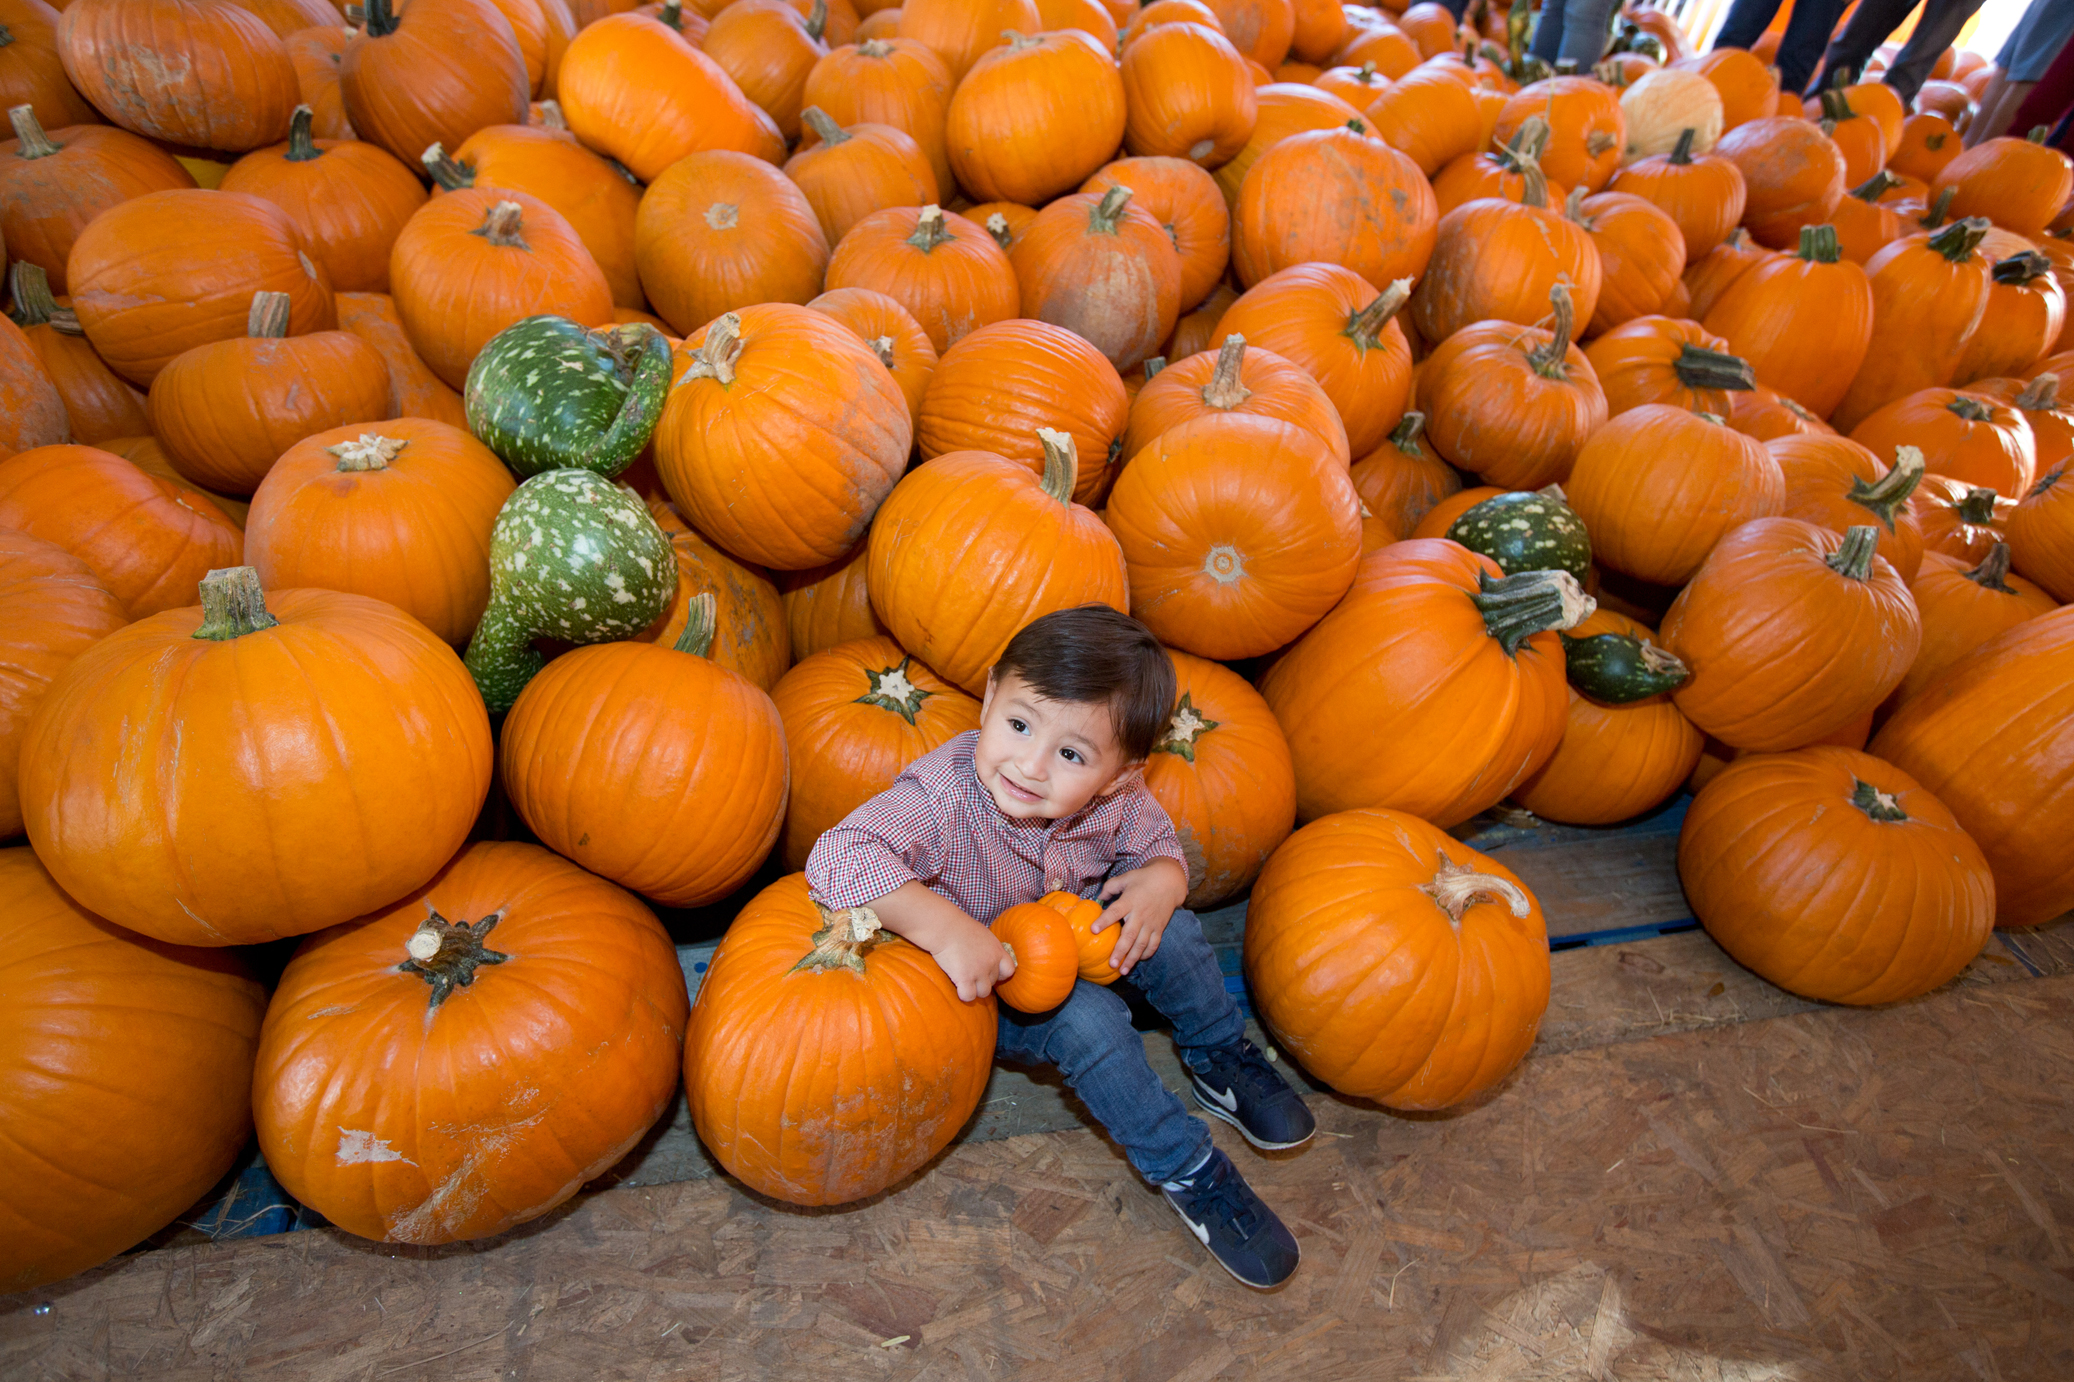 A little boy sits on a pile of pumpkins at a fall event in Kissimmee, Florida.